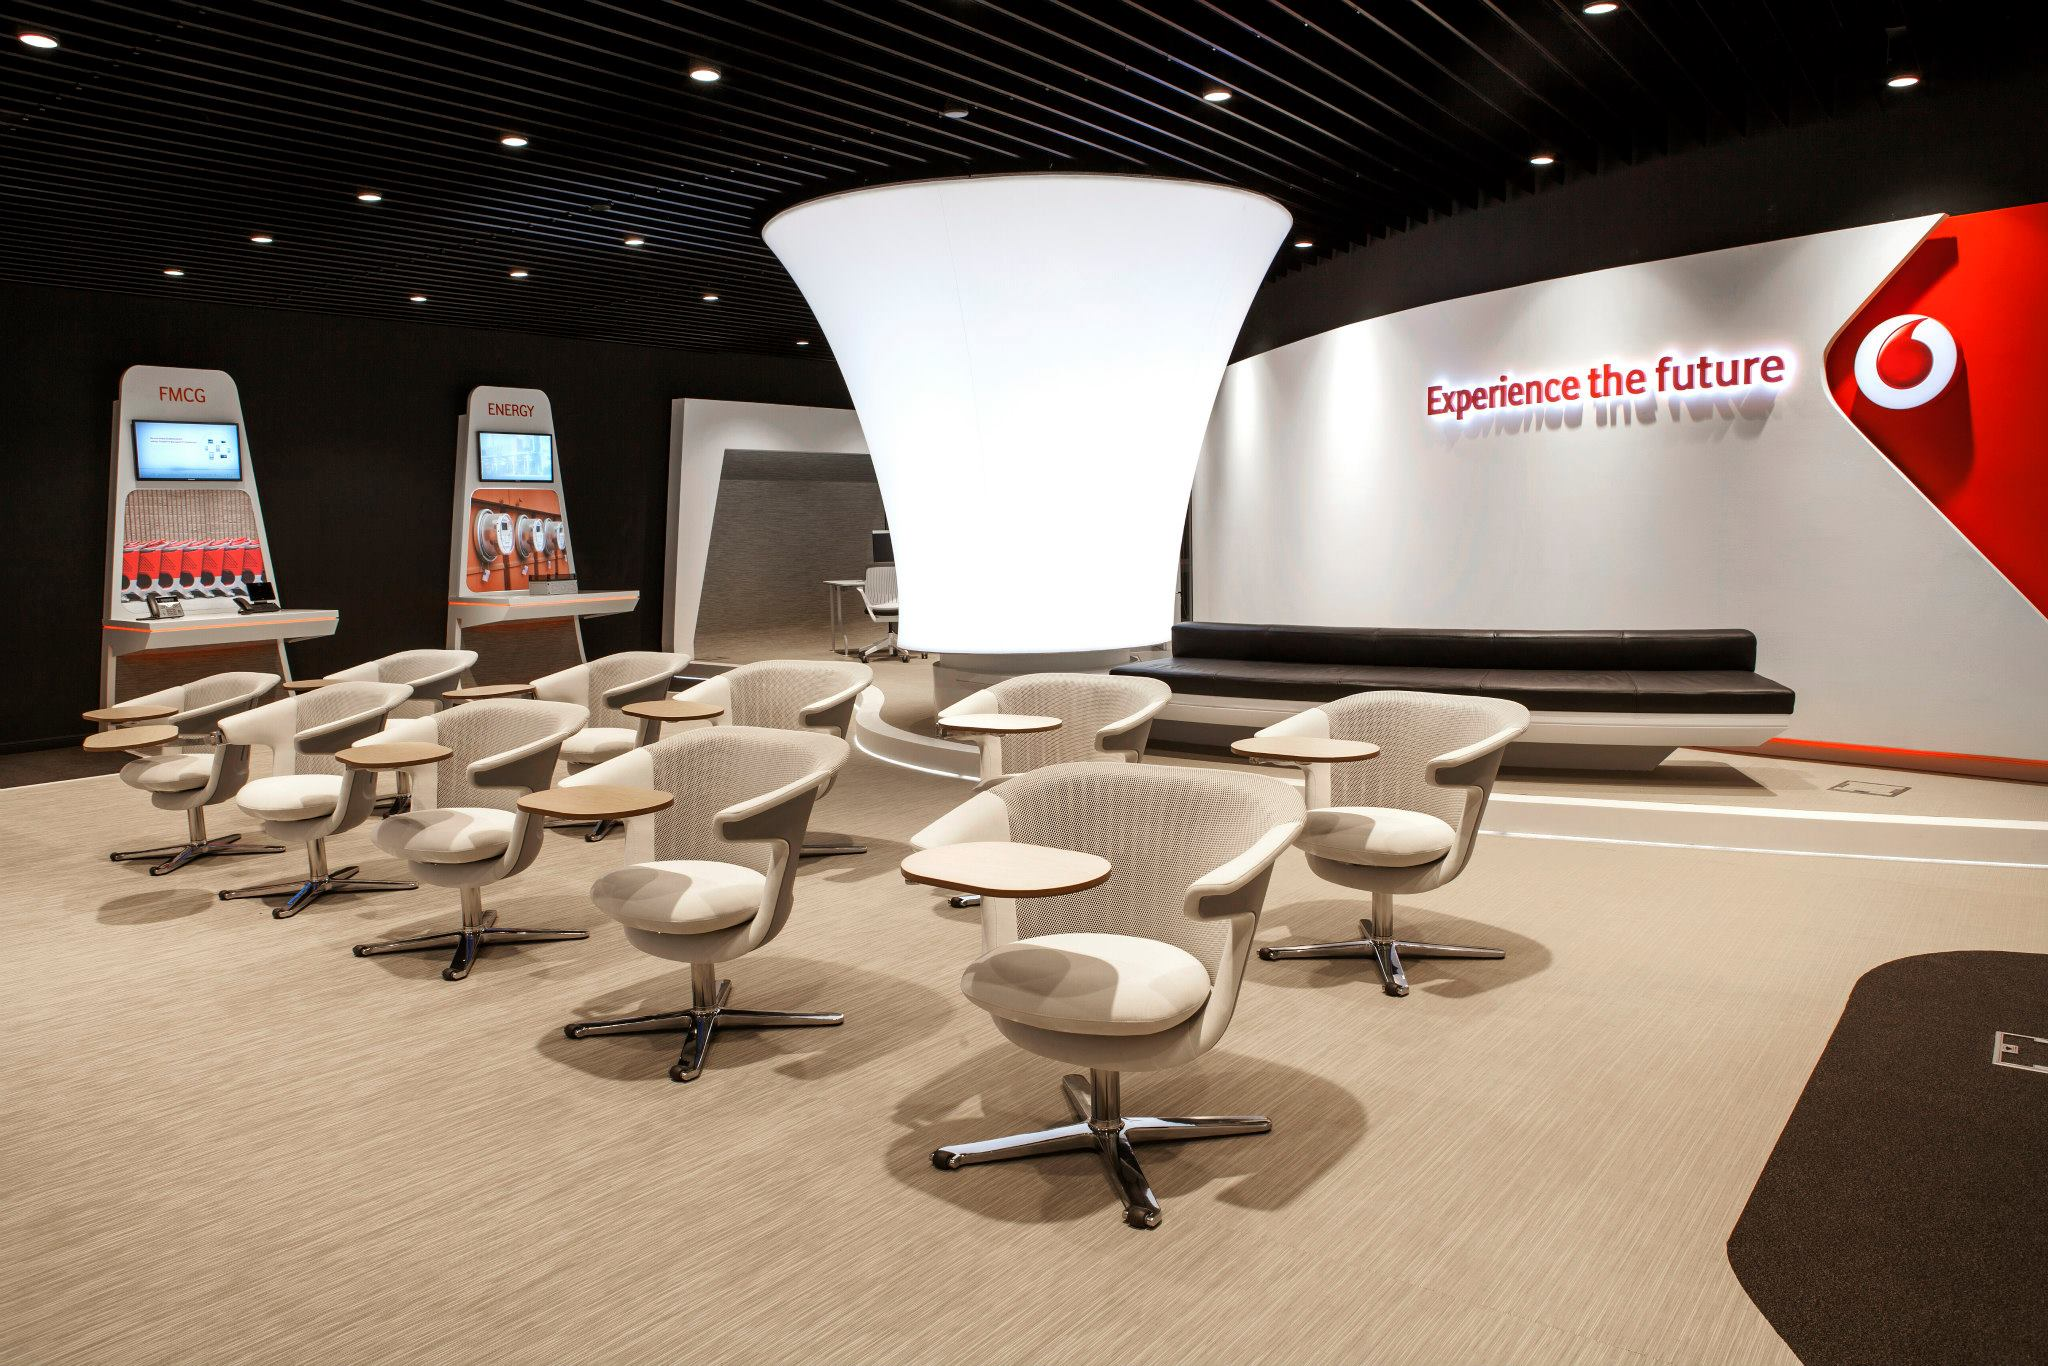 VODAFONE-Customer-Experience-Center-Pipera_Trivenus-Ama-Design_09